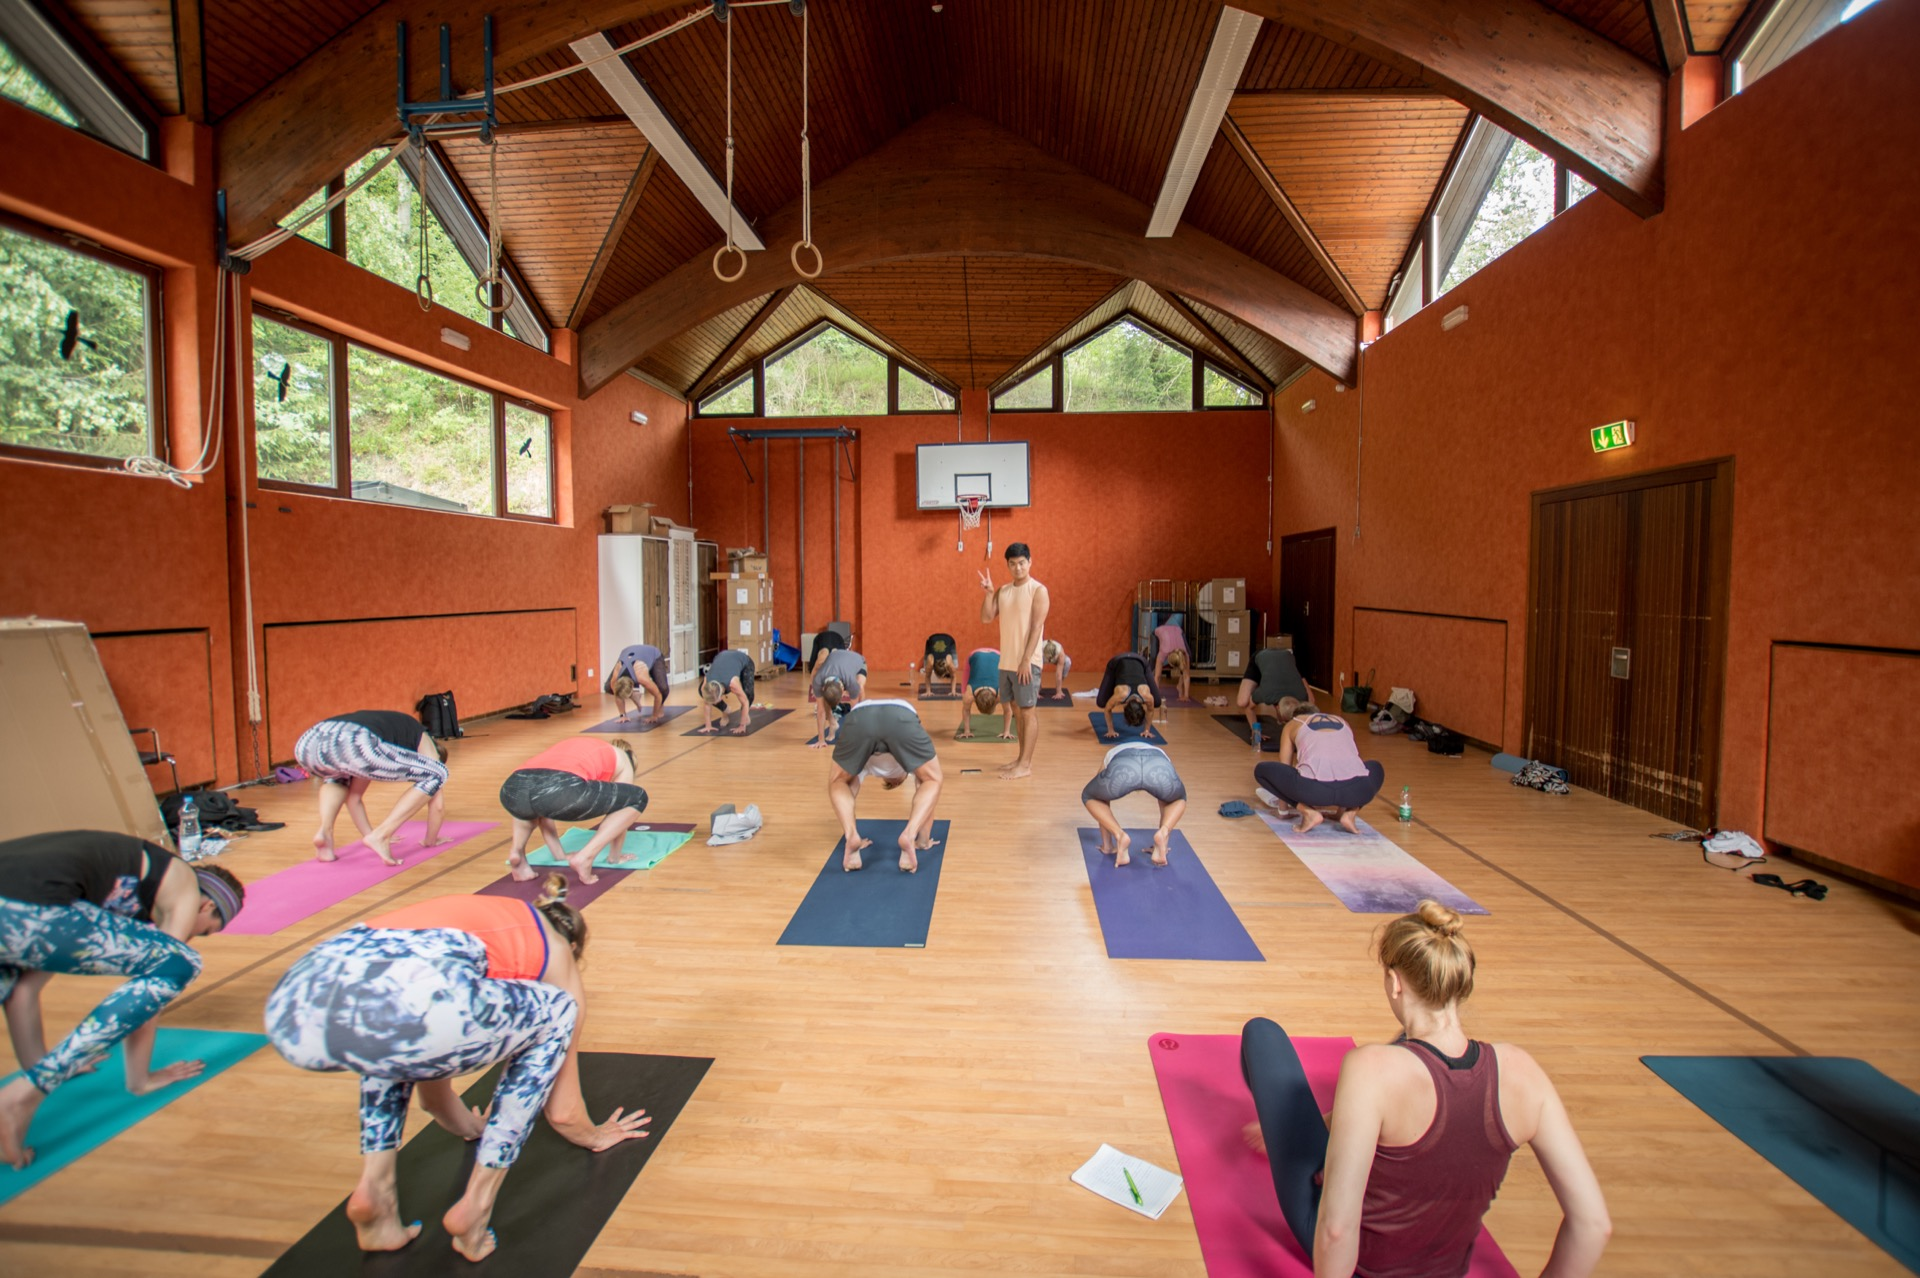 Hie-Kim-Friends-2019-Yoga-Retreat-Alina-Matis-Photography-177 - Hie Kim Yoga - Yoga Retreat - Yoga Workshops und Reisen